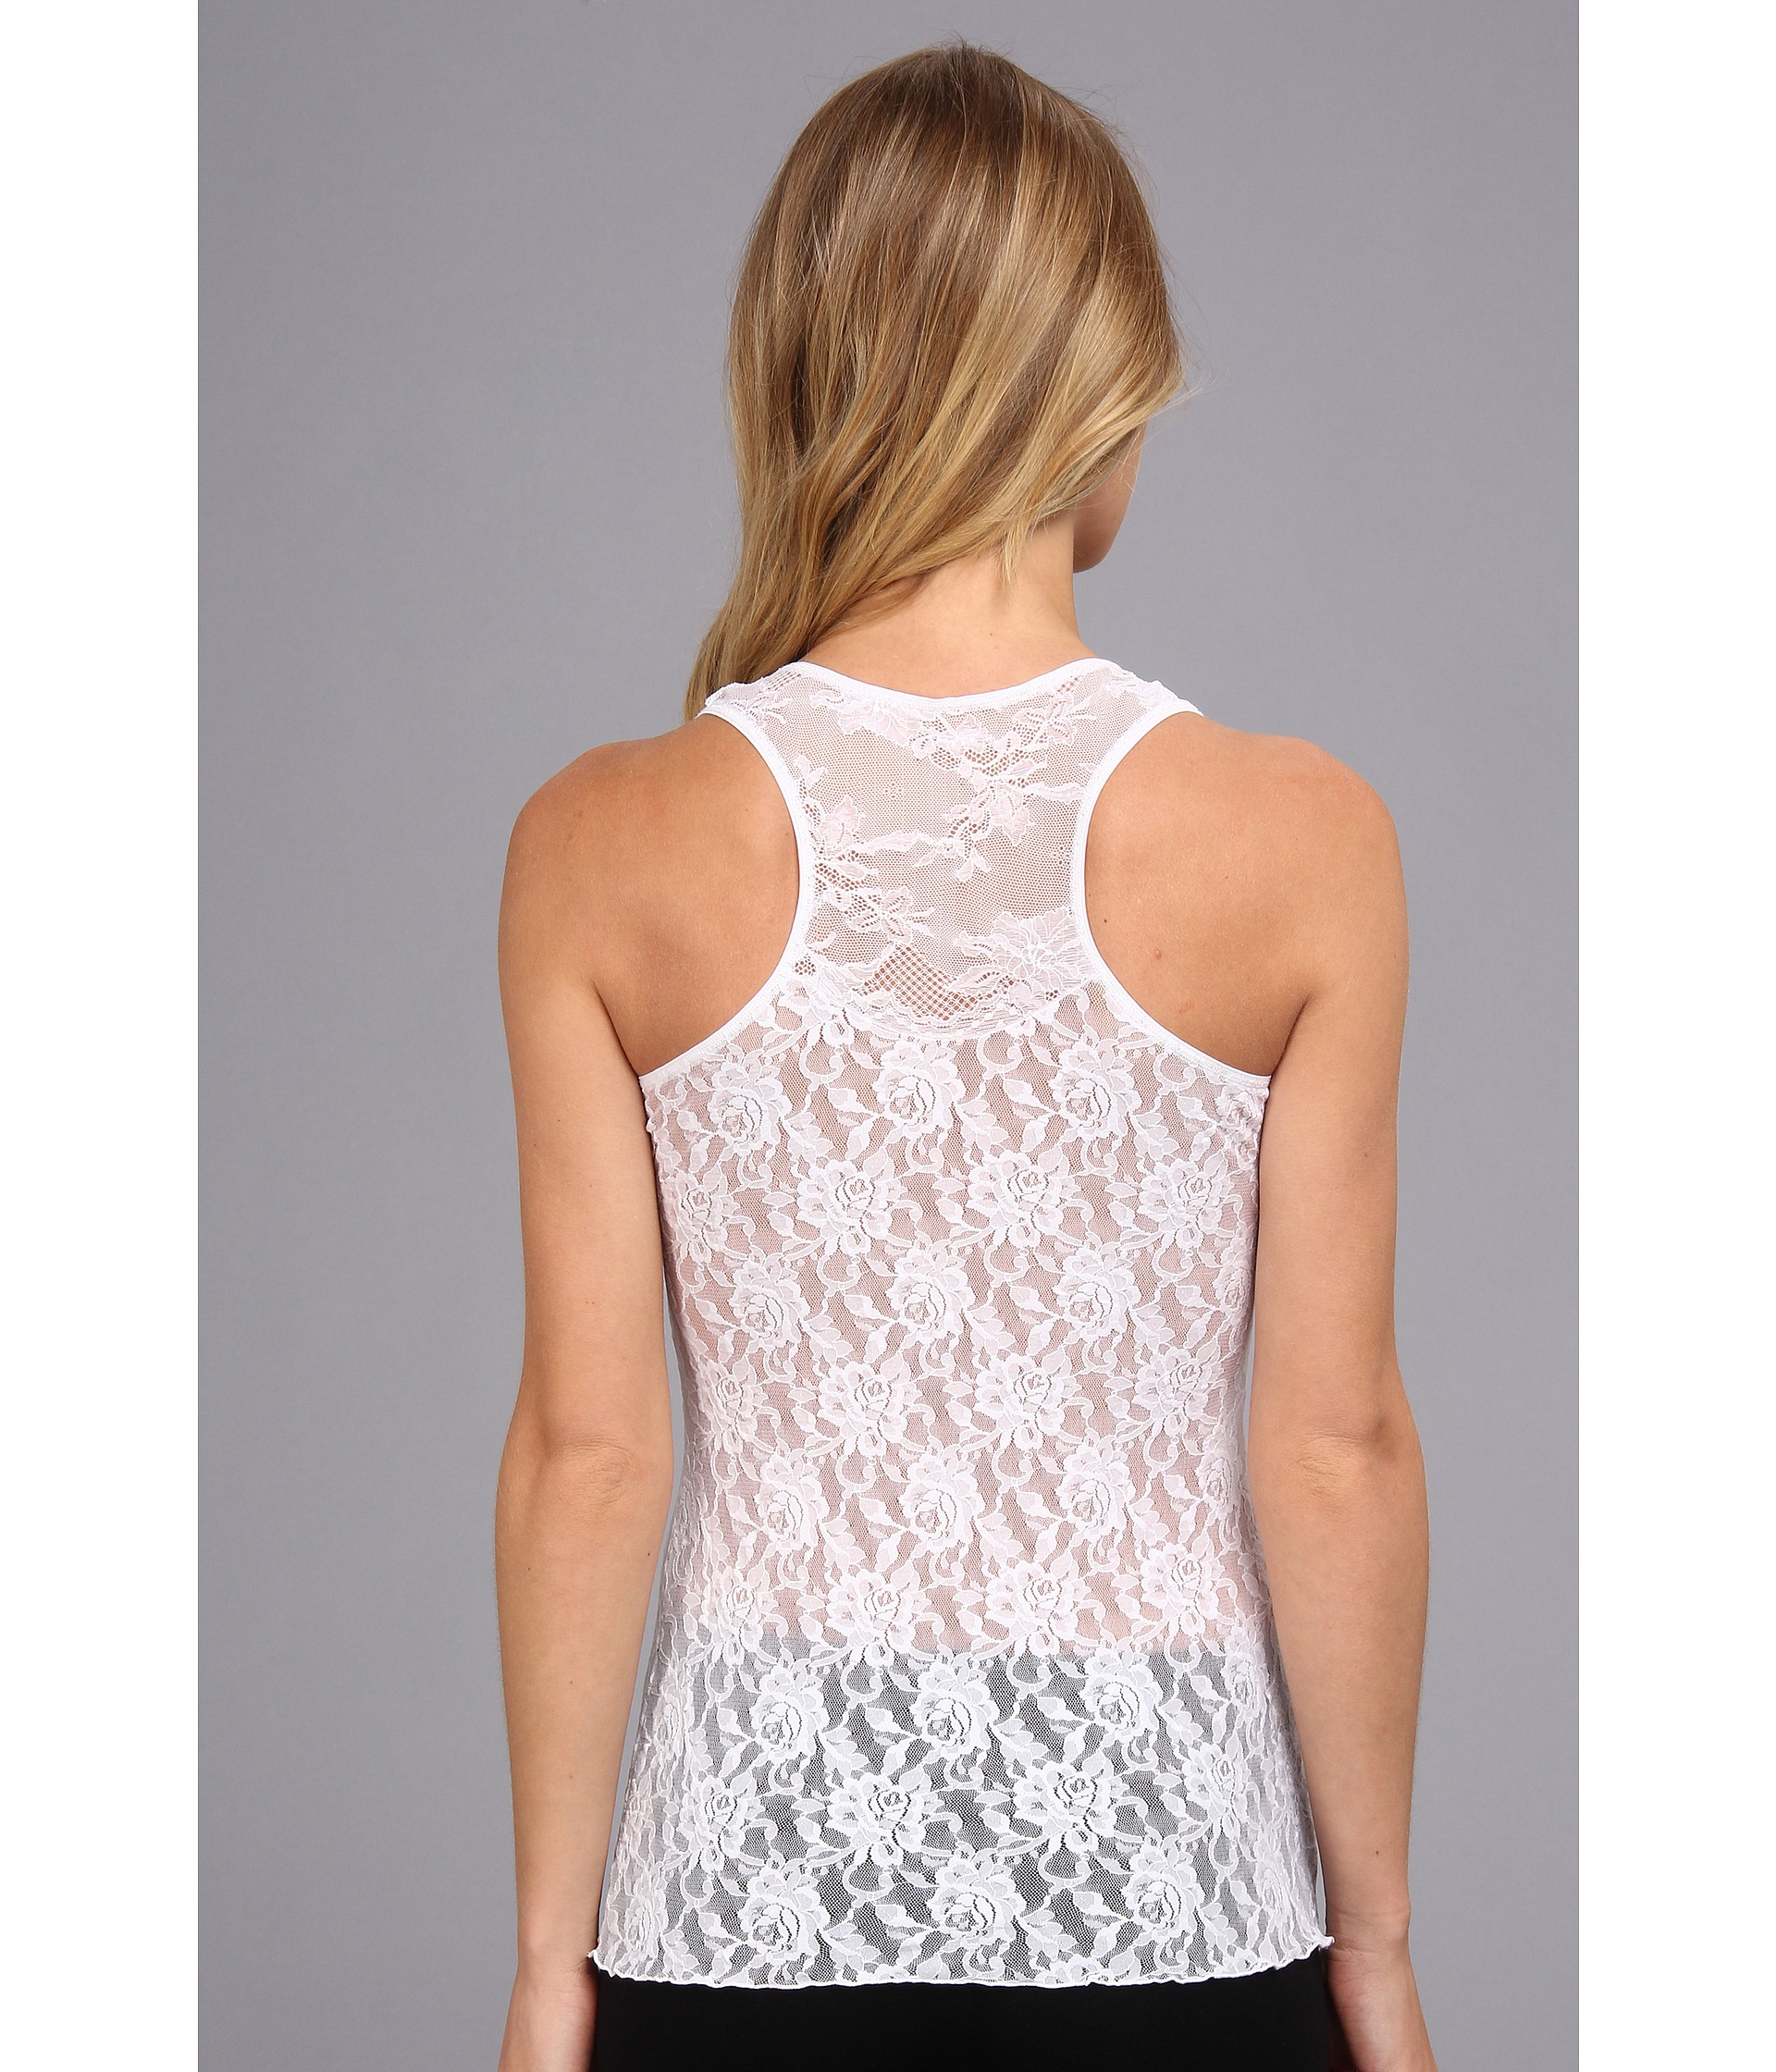 Shop online for Striped racerback cami. Find Tops at $+, Sale, Women and more at Rwco.